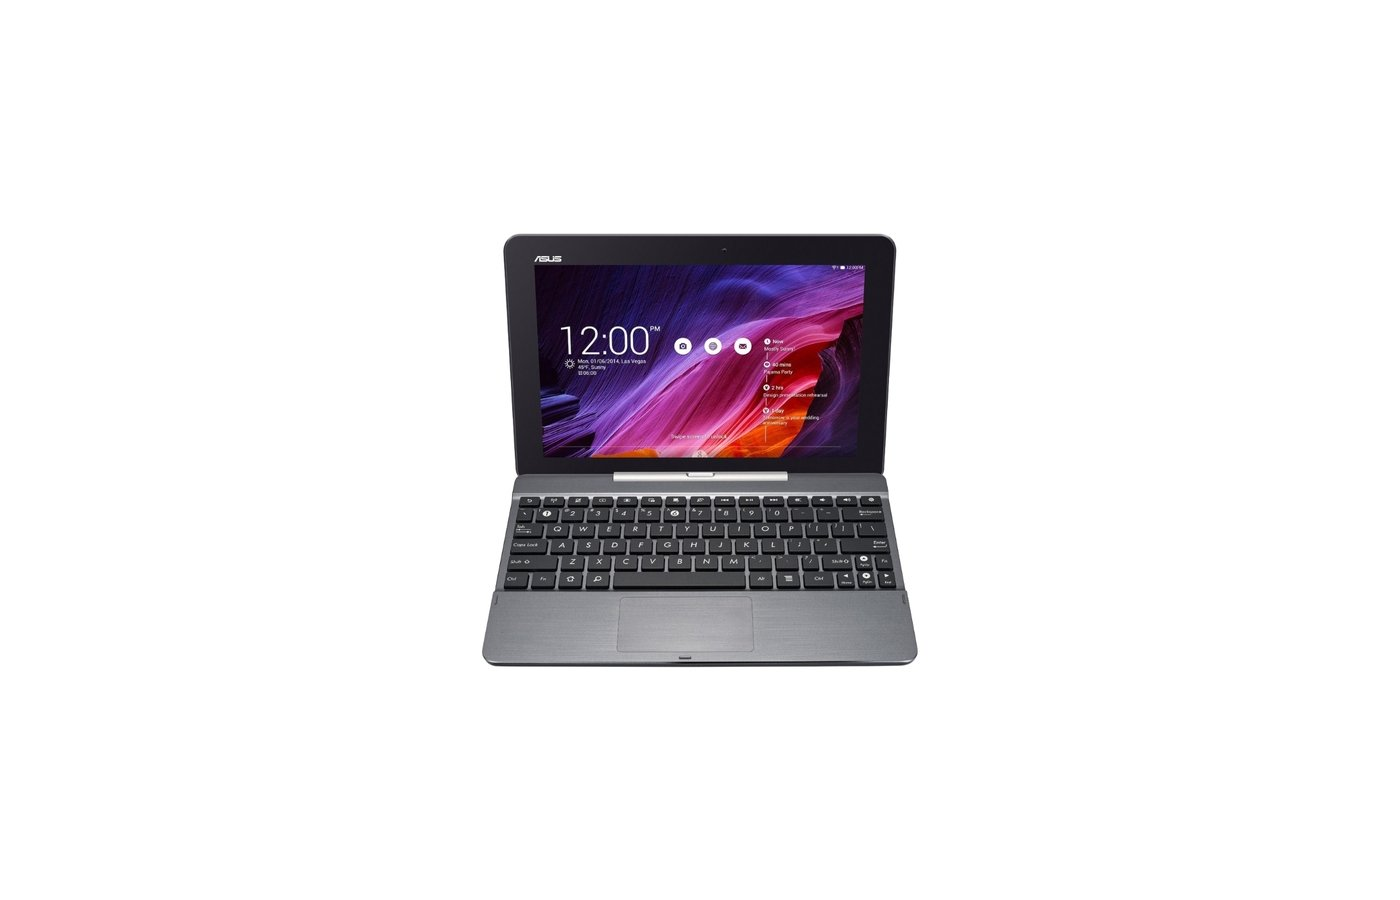 Планшет ASUS TF103CG-1A059A /90NK0181-M01110/ With docking